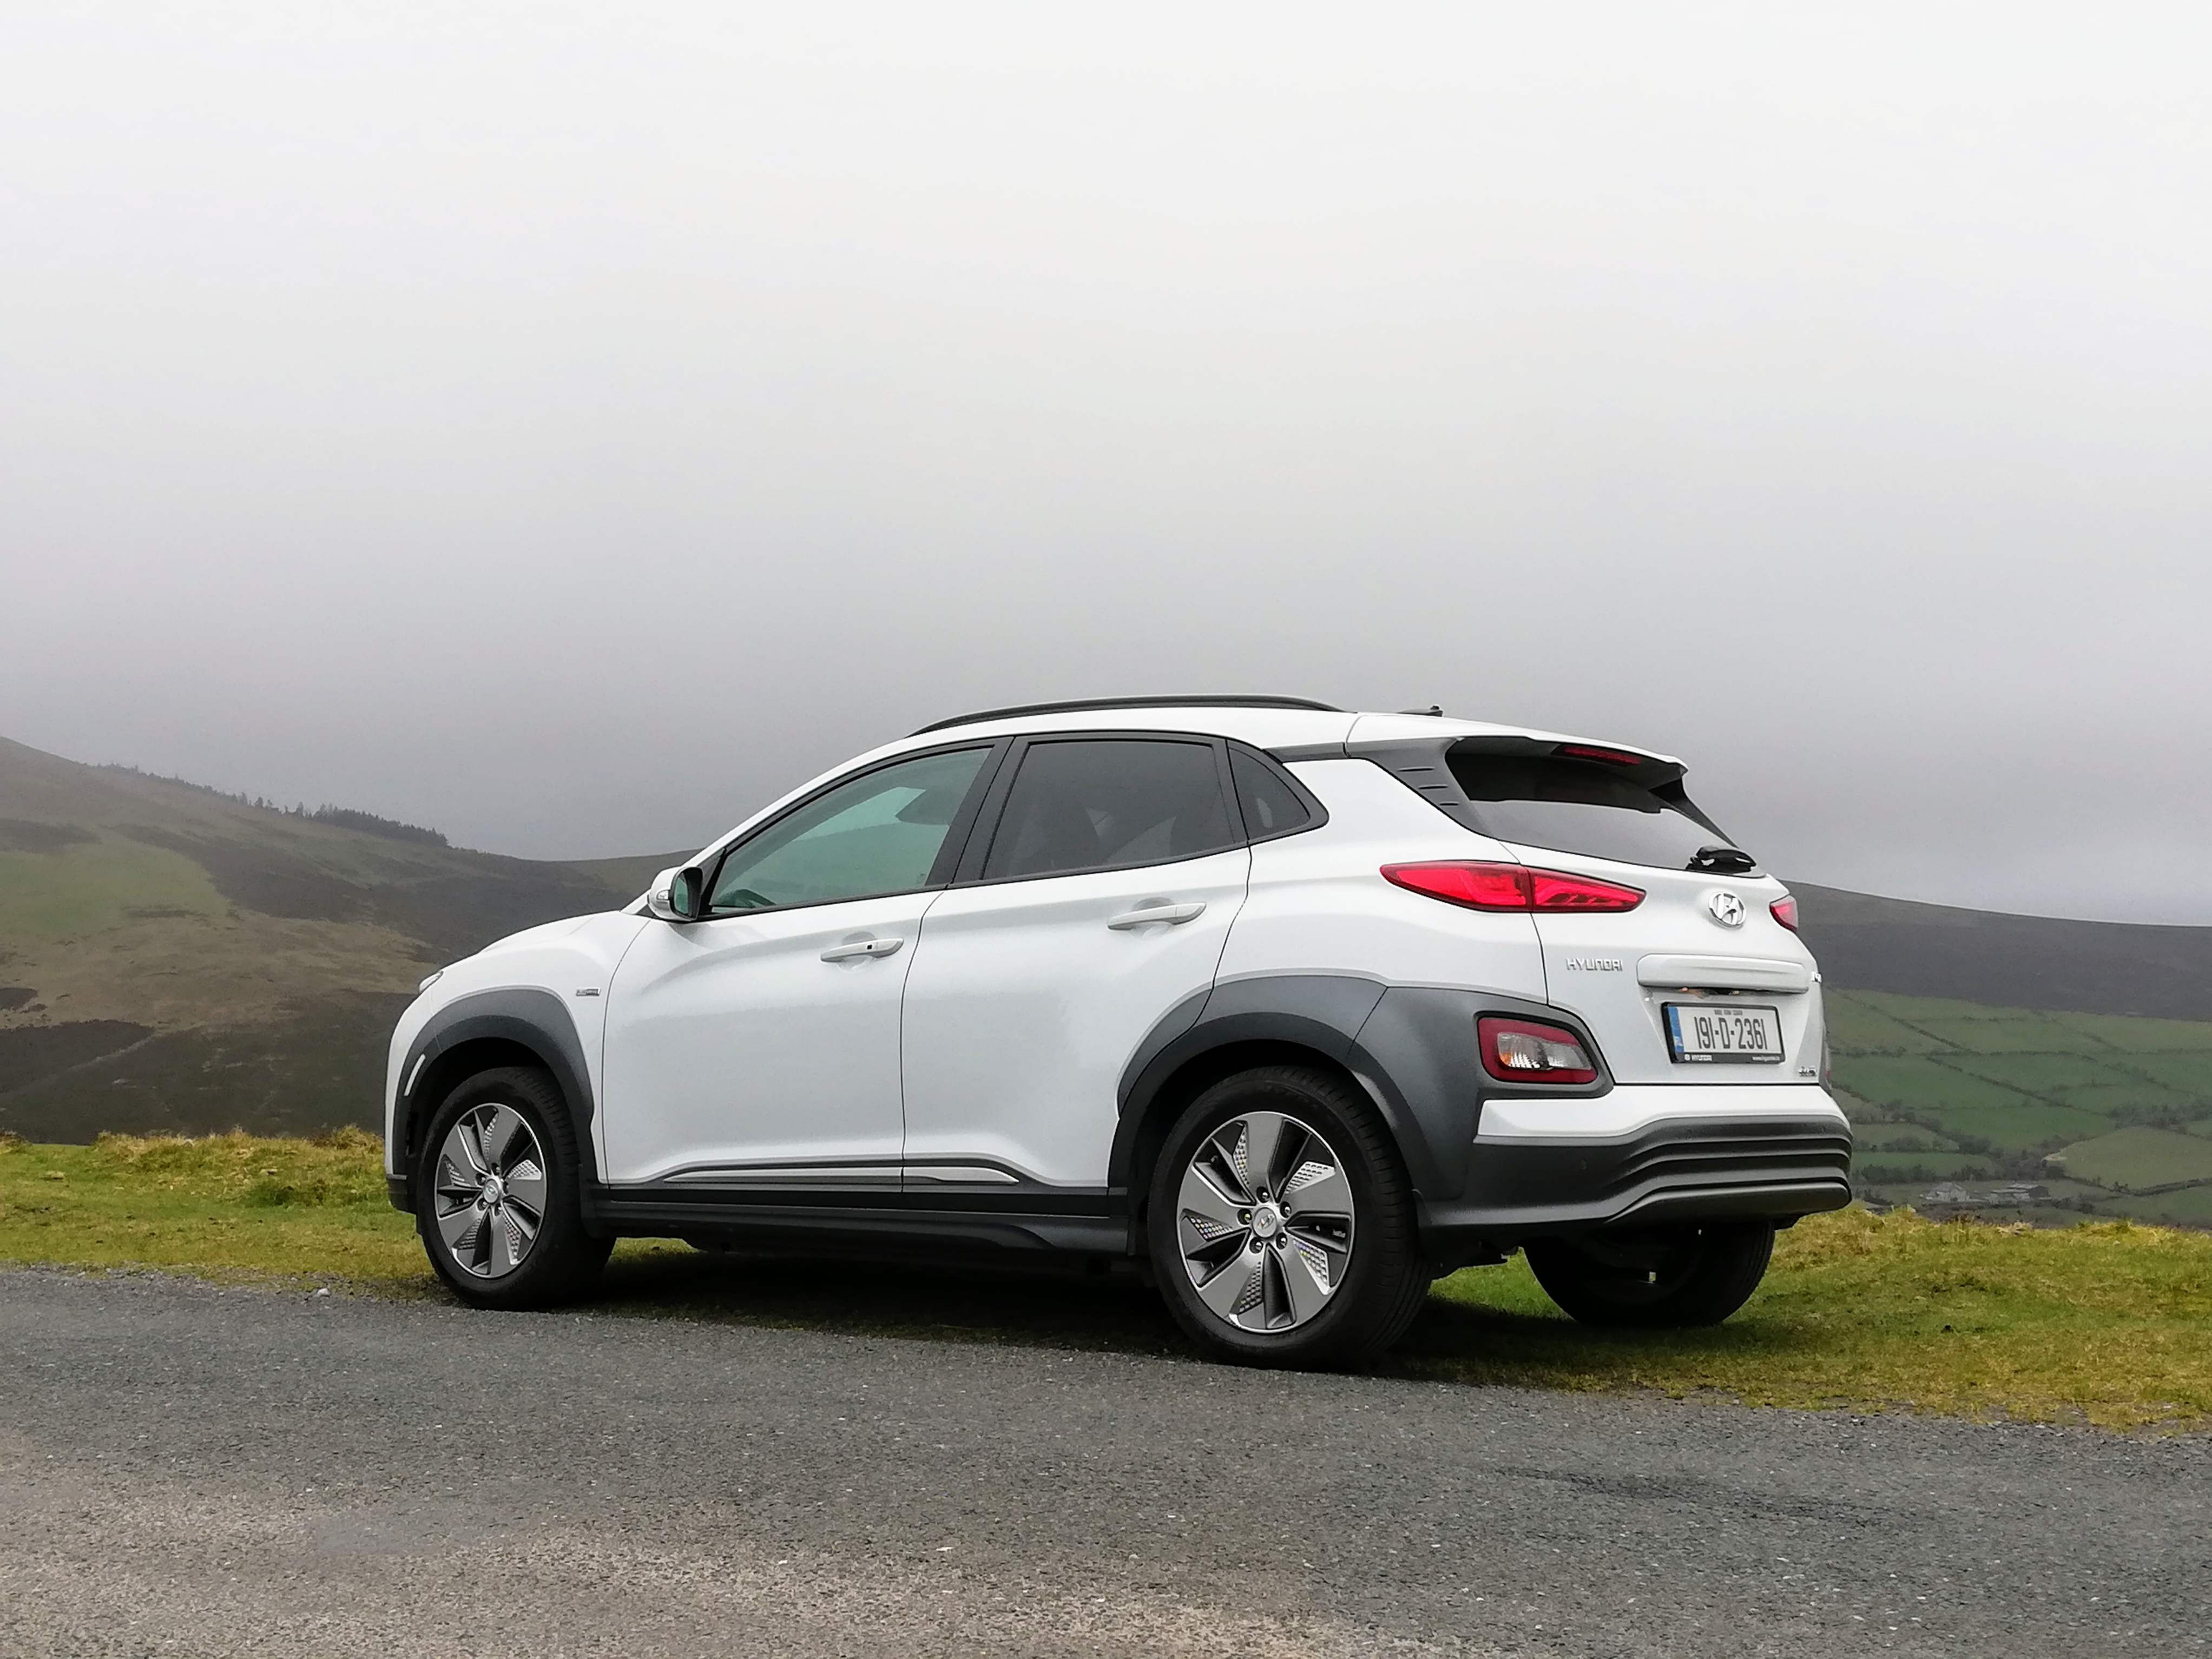 The Hyundai Kona Electric Is Available From €37,630 With